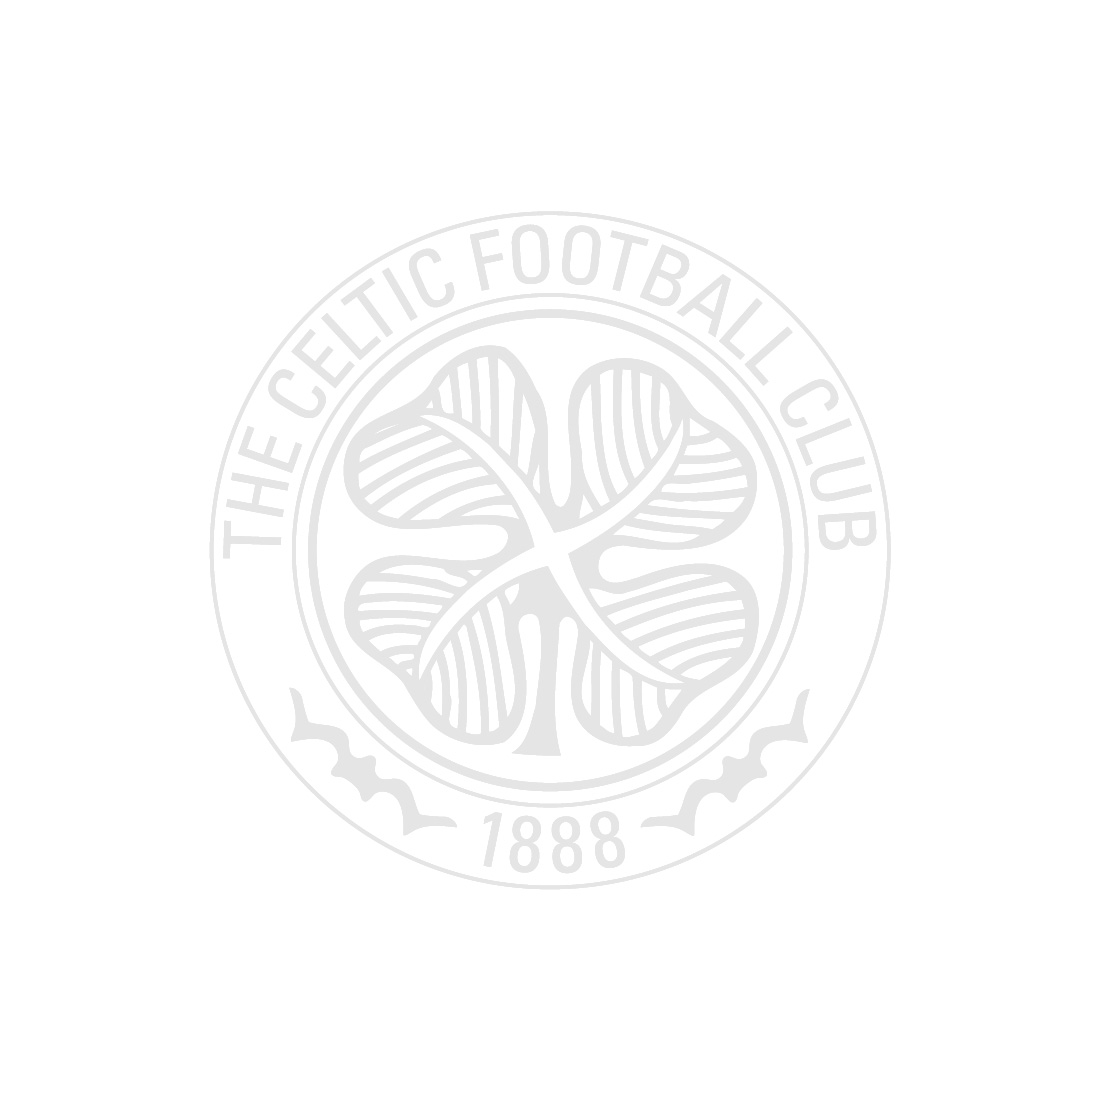 Official Celtic 2021 Annual